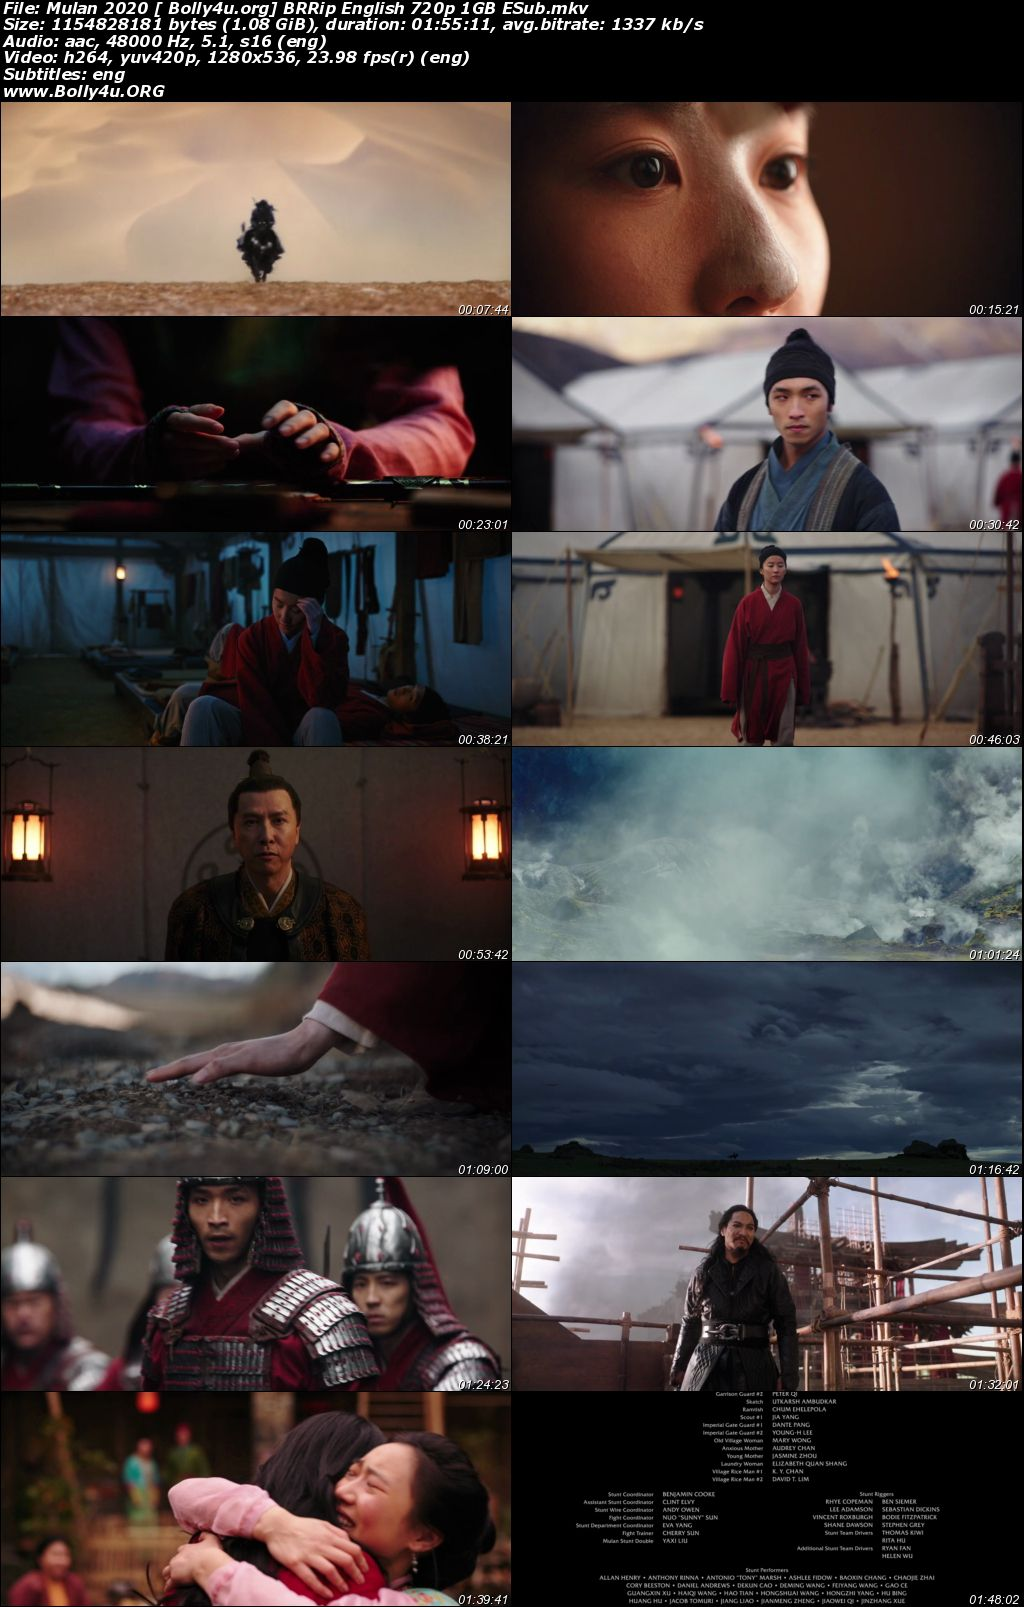 Mulan 2020 BRRip 1Gb English 720p ESub Download